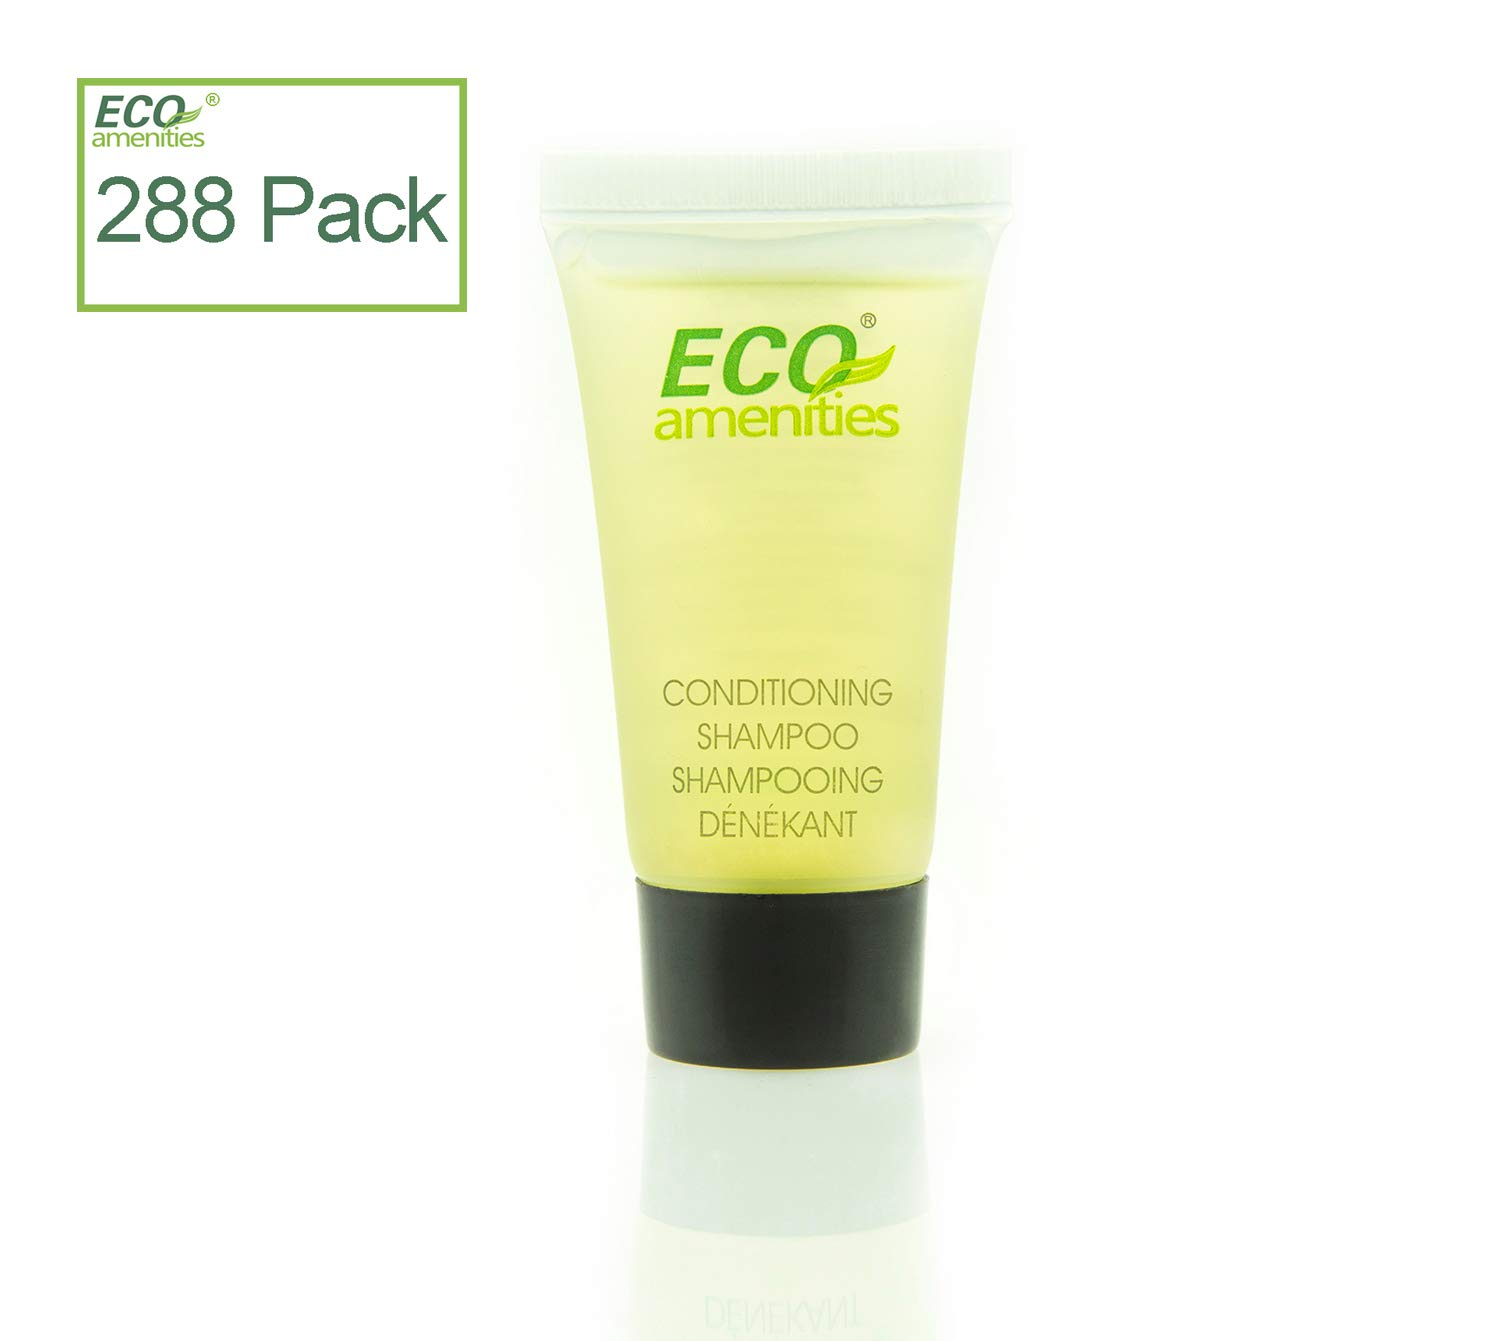 ECO AMENITIES Travel Size 0.75oz Hotel Shampoo and Conditioner Bulk, Clear, Green Tea, 288 Count Yang Zhou Eco-Amenities co. ltd 2-001